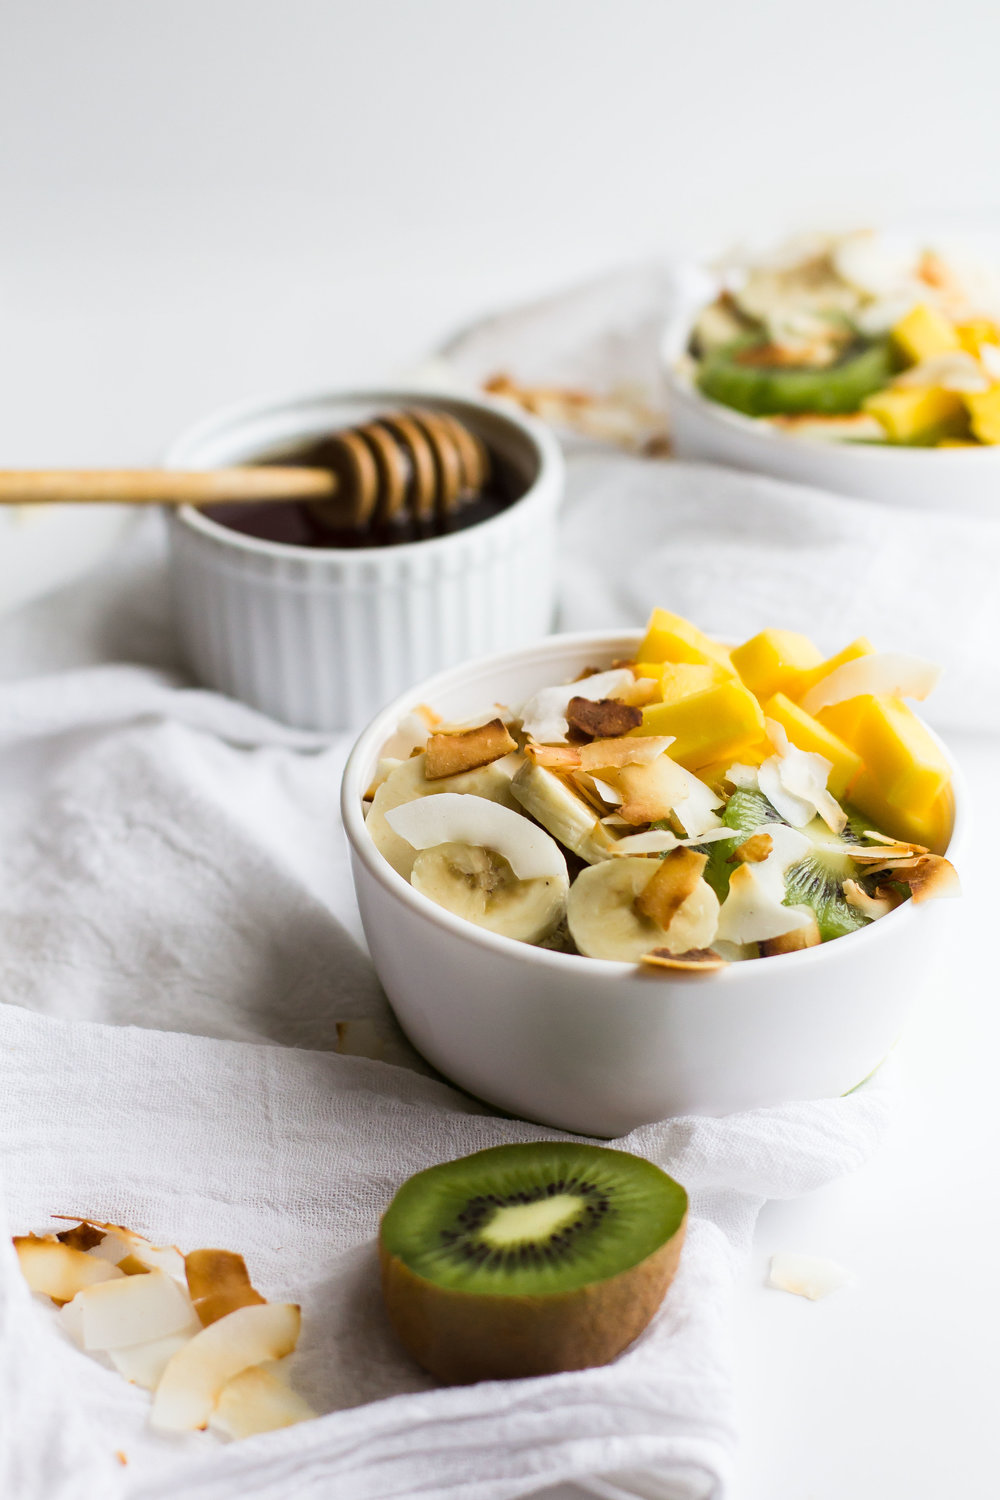 Tropical Quinoa Breakfast Bowl - Sarah J. Hauser.jpg